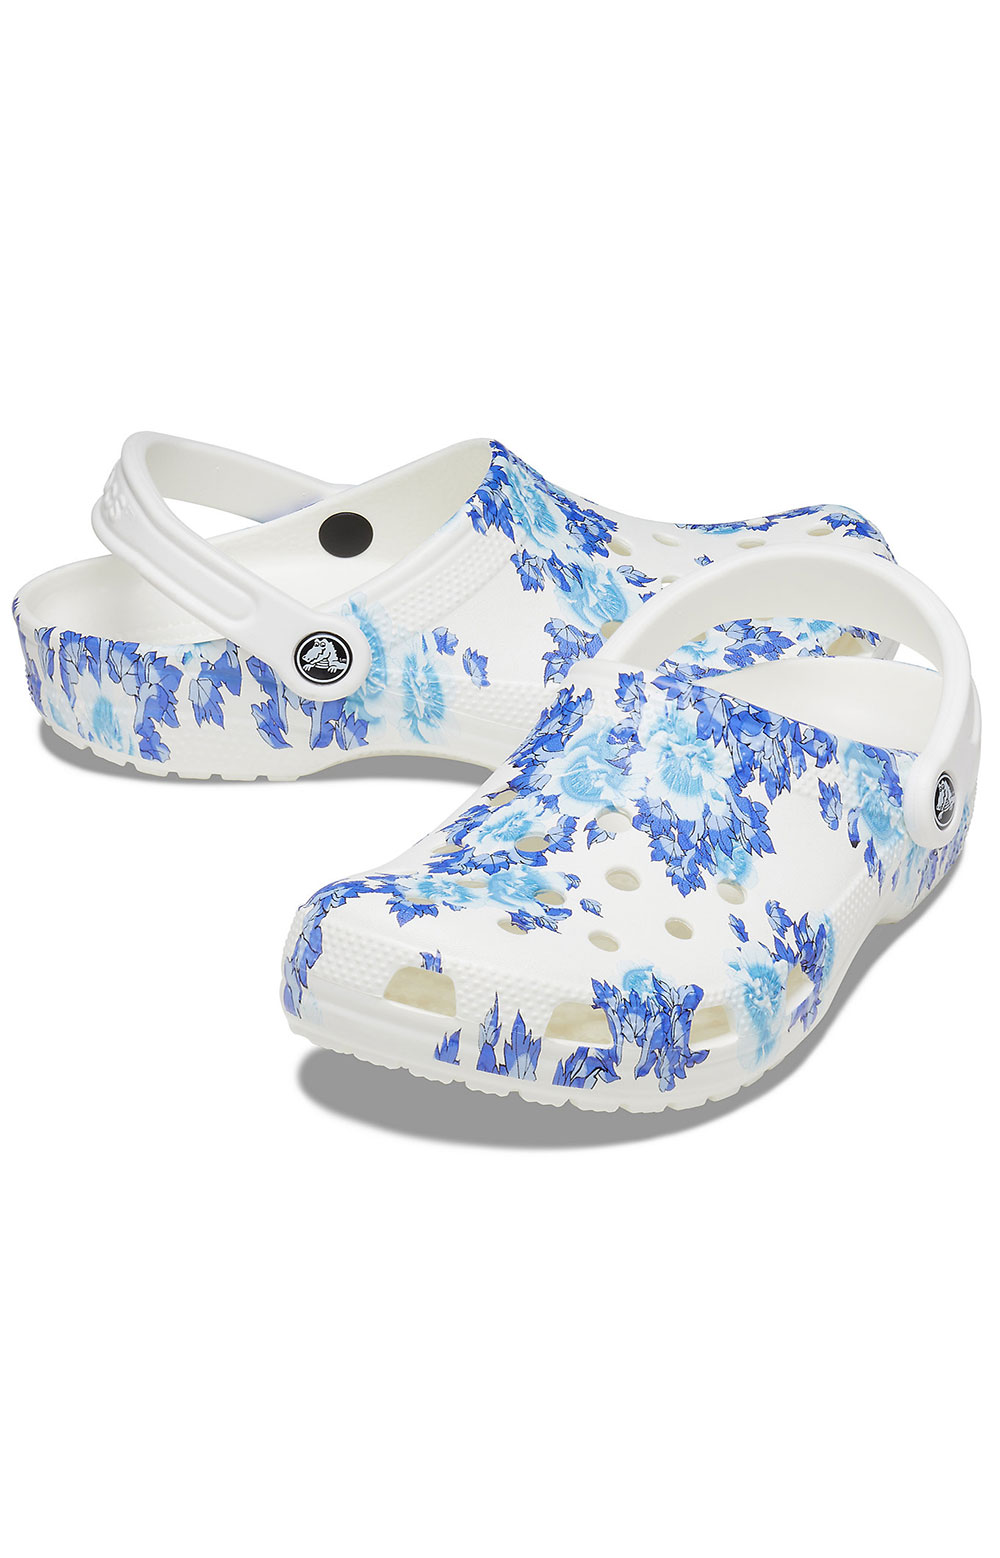 Classic Printed Floral Clogs - White/Blue 3